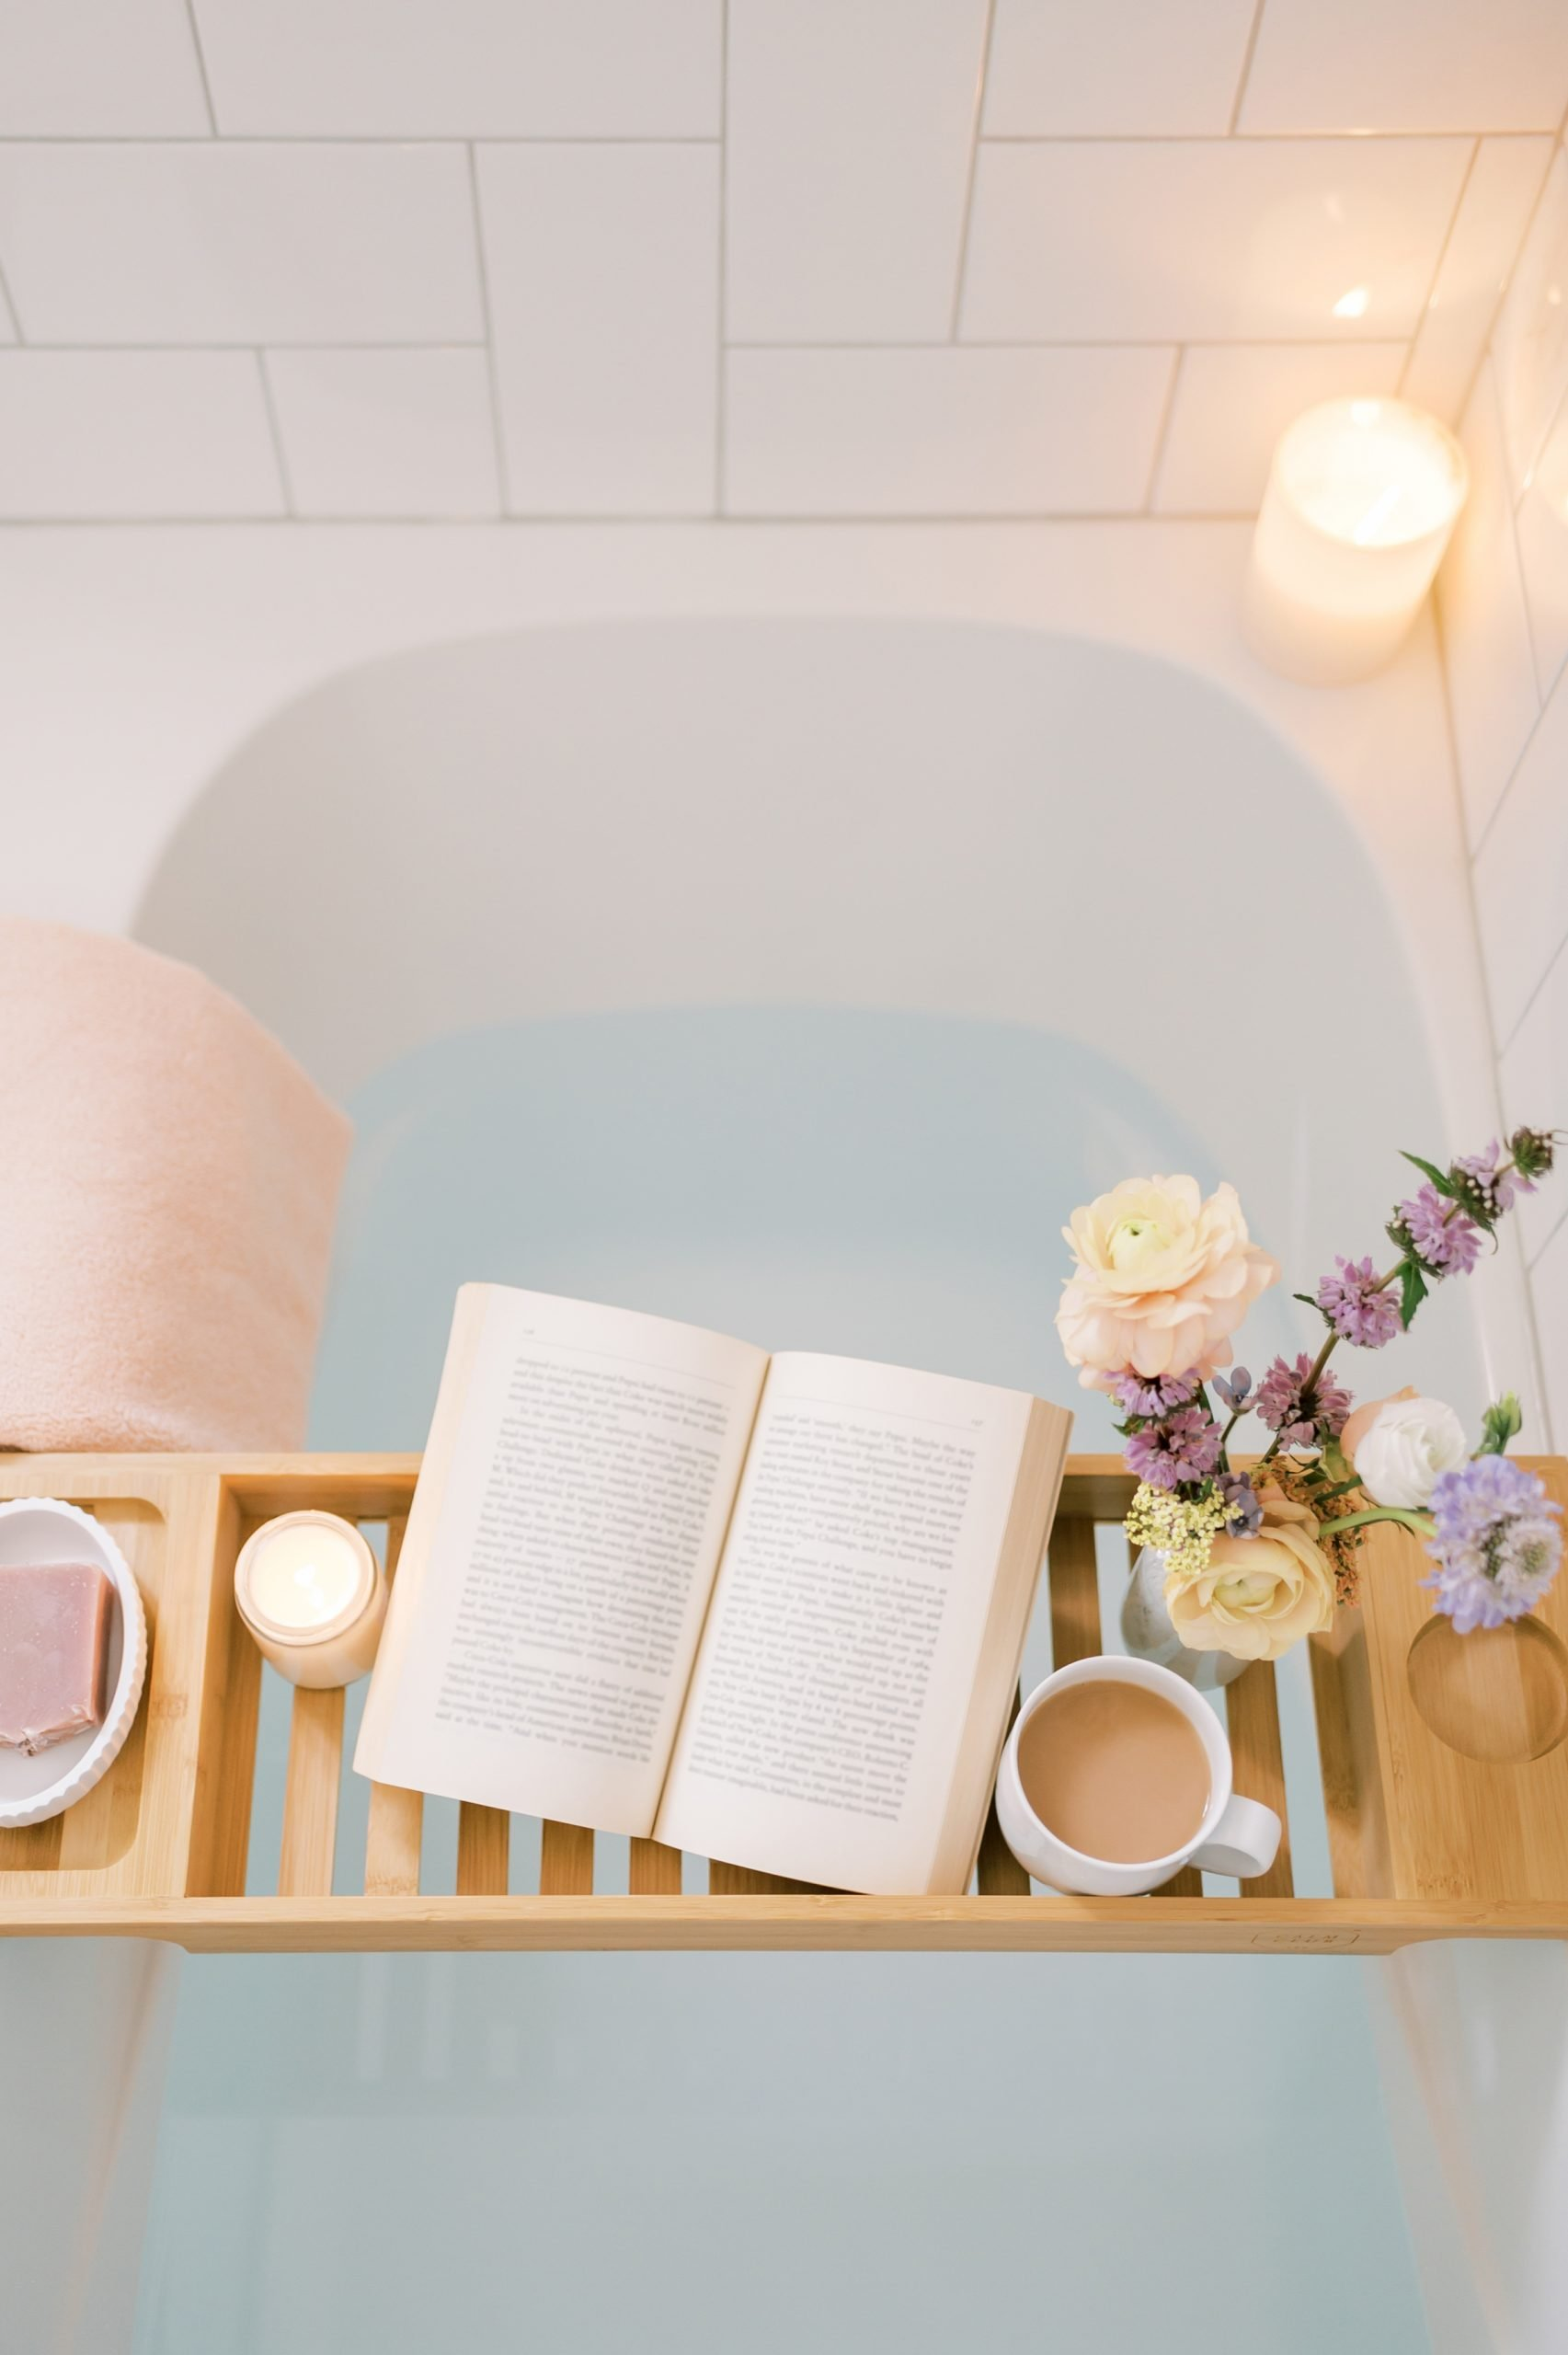 Drawn bath with book and coffee on a tray